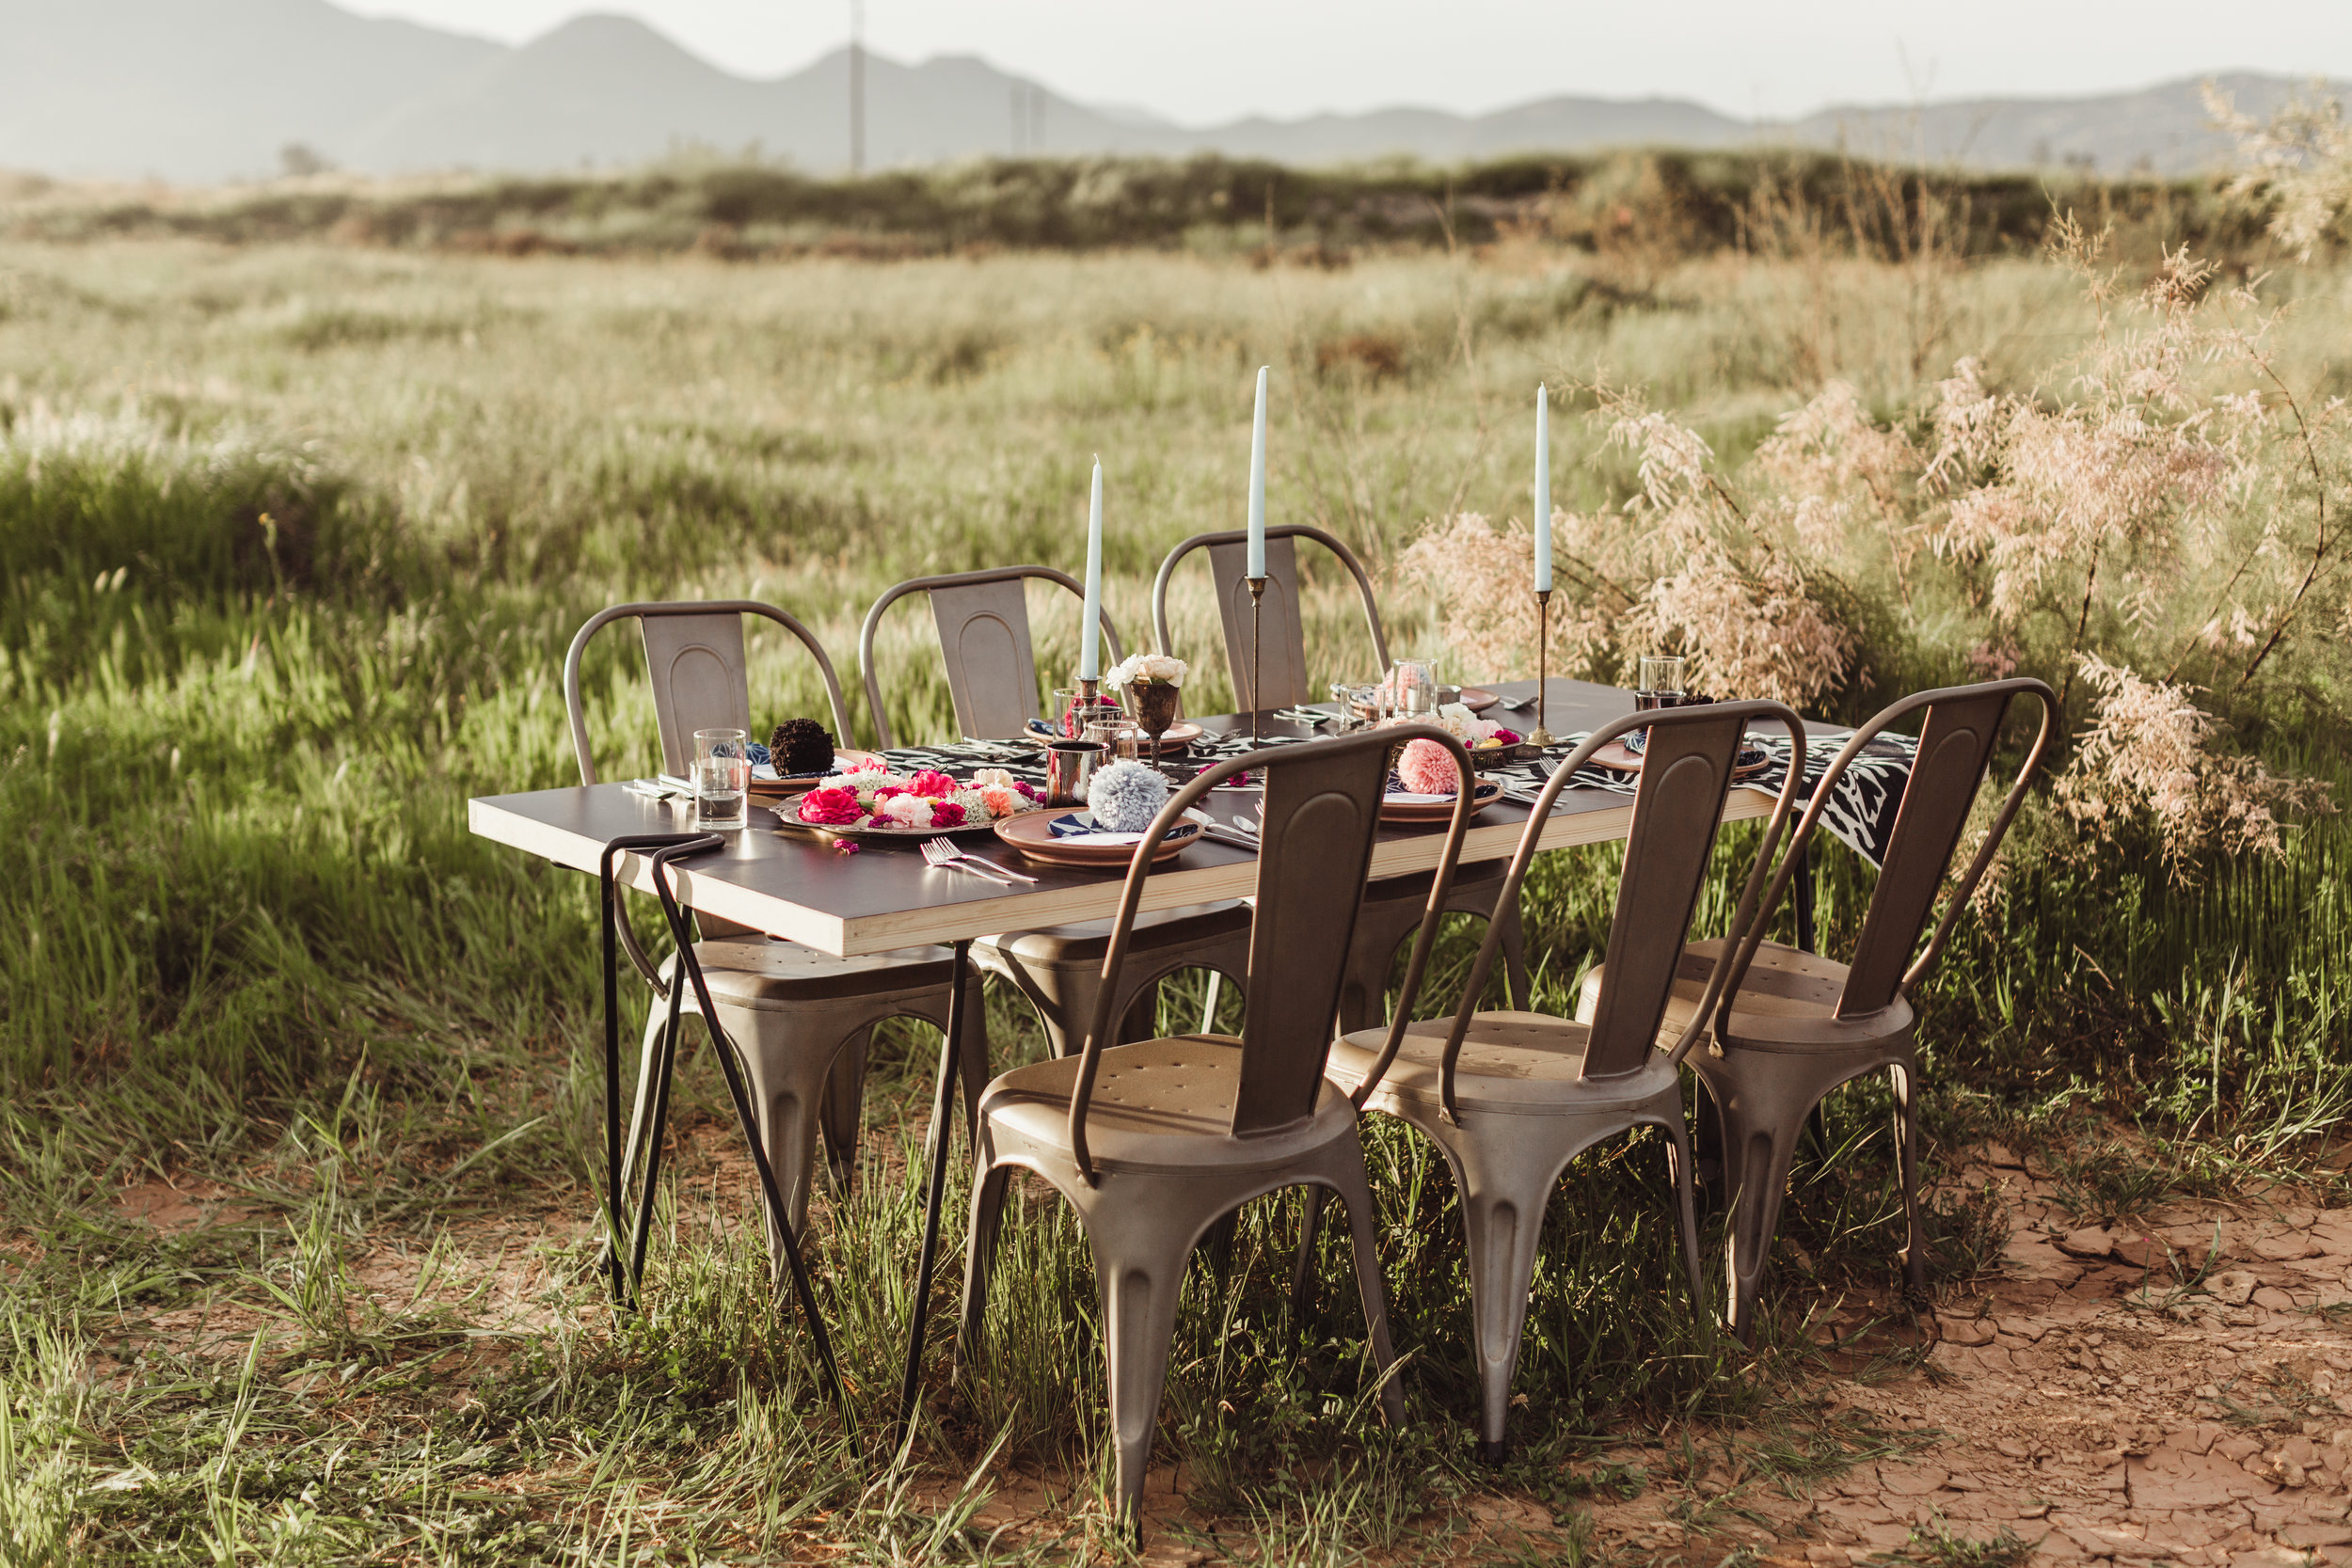 Jamie_English_Photography_Styled_Elopement_Valle_de_Guadalupe_Baja_California_Mexico_Luna_Wild_March_2017-9.jpg